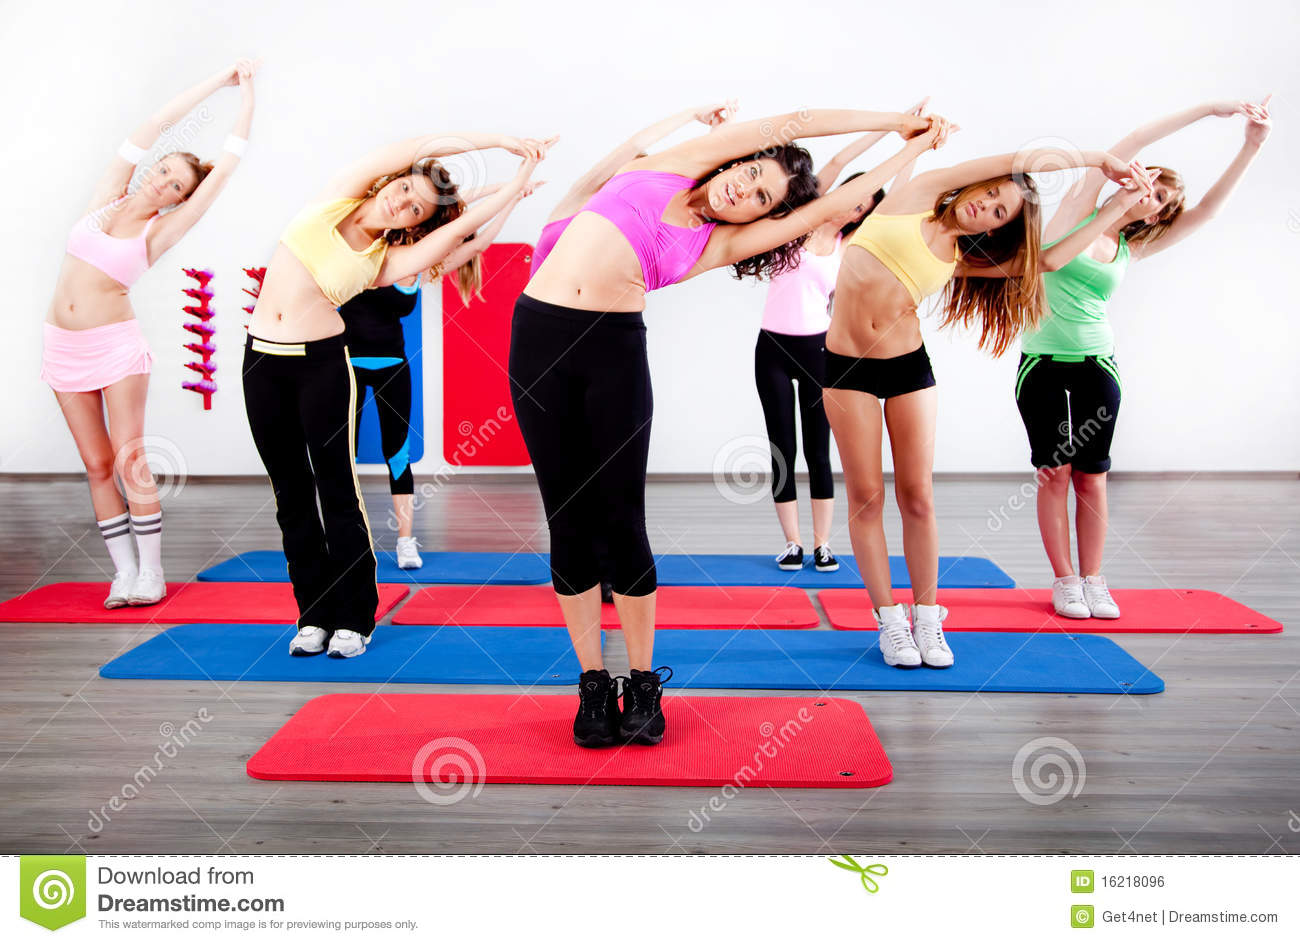 Fitness videos by work it dance and fitness.